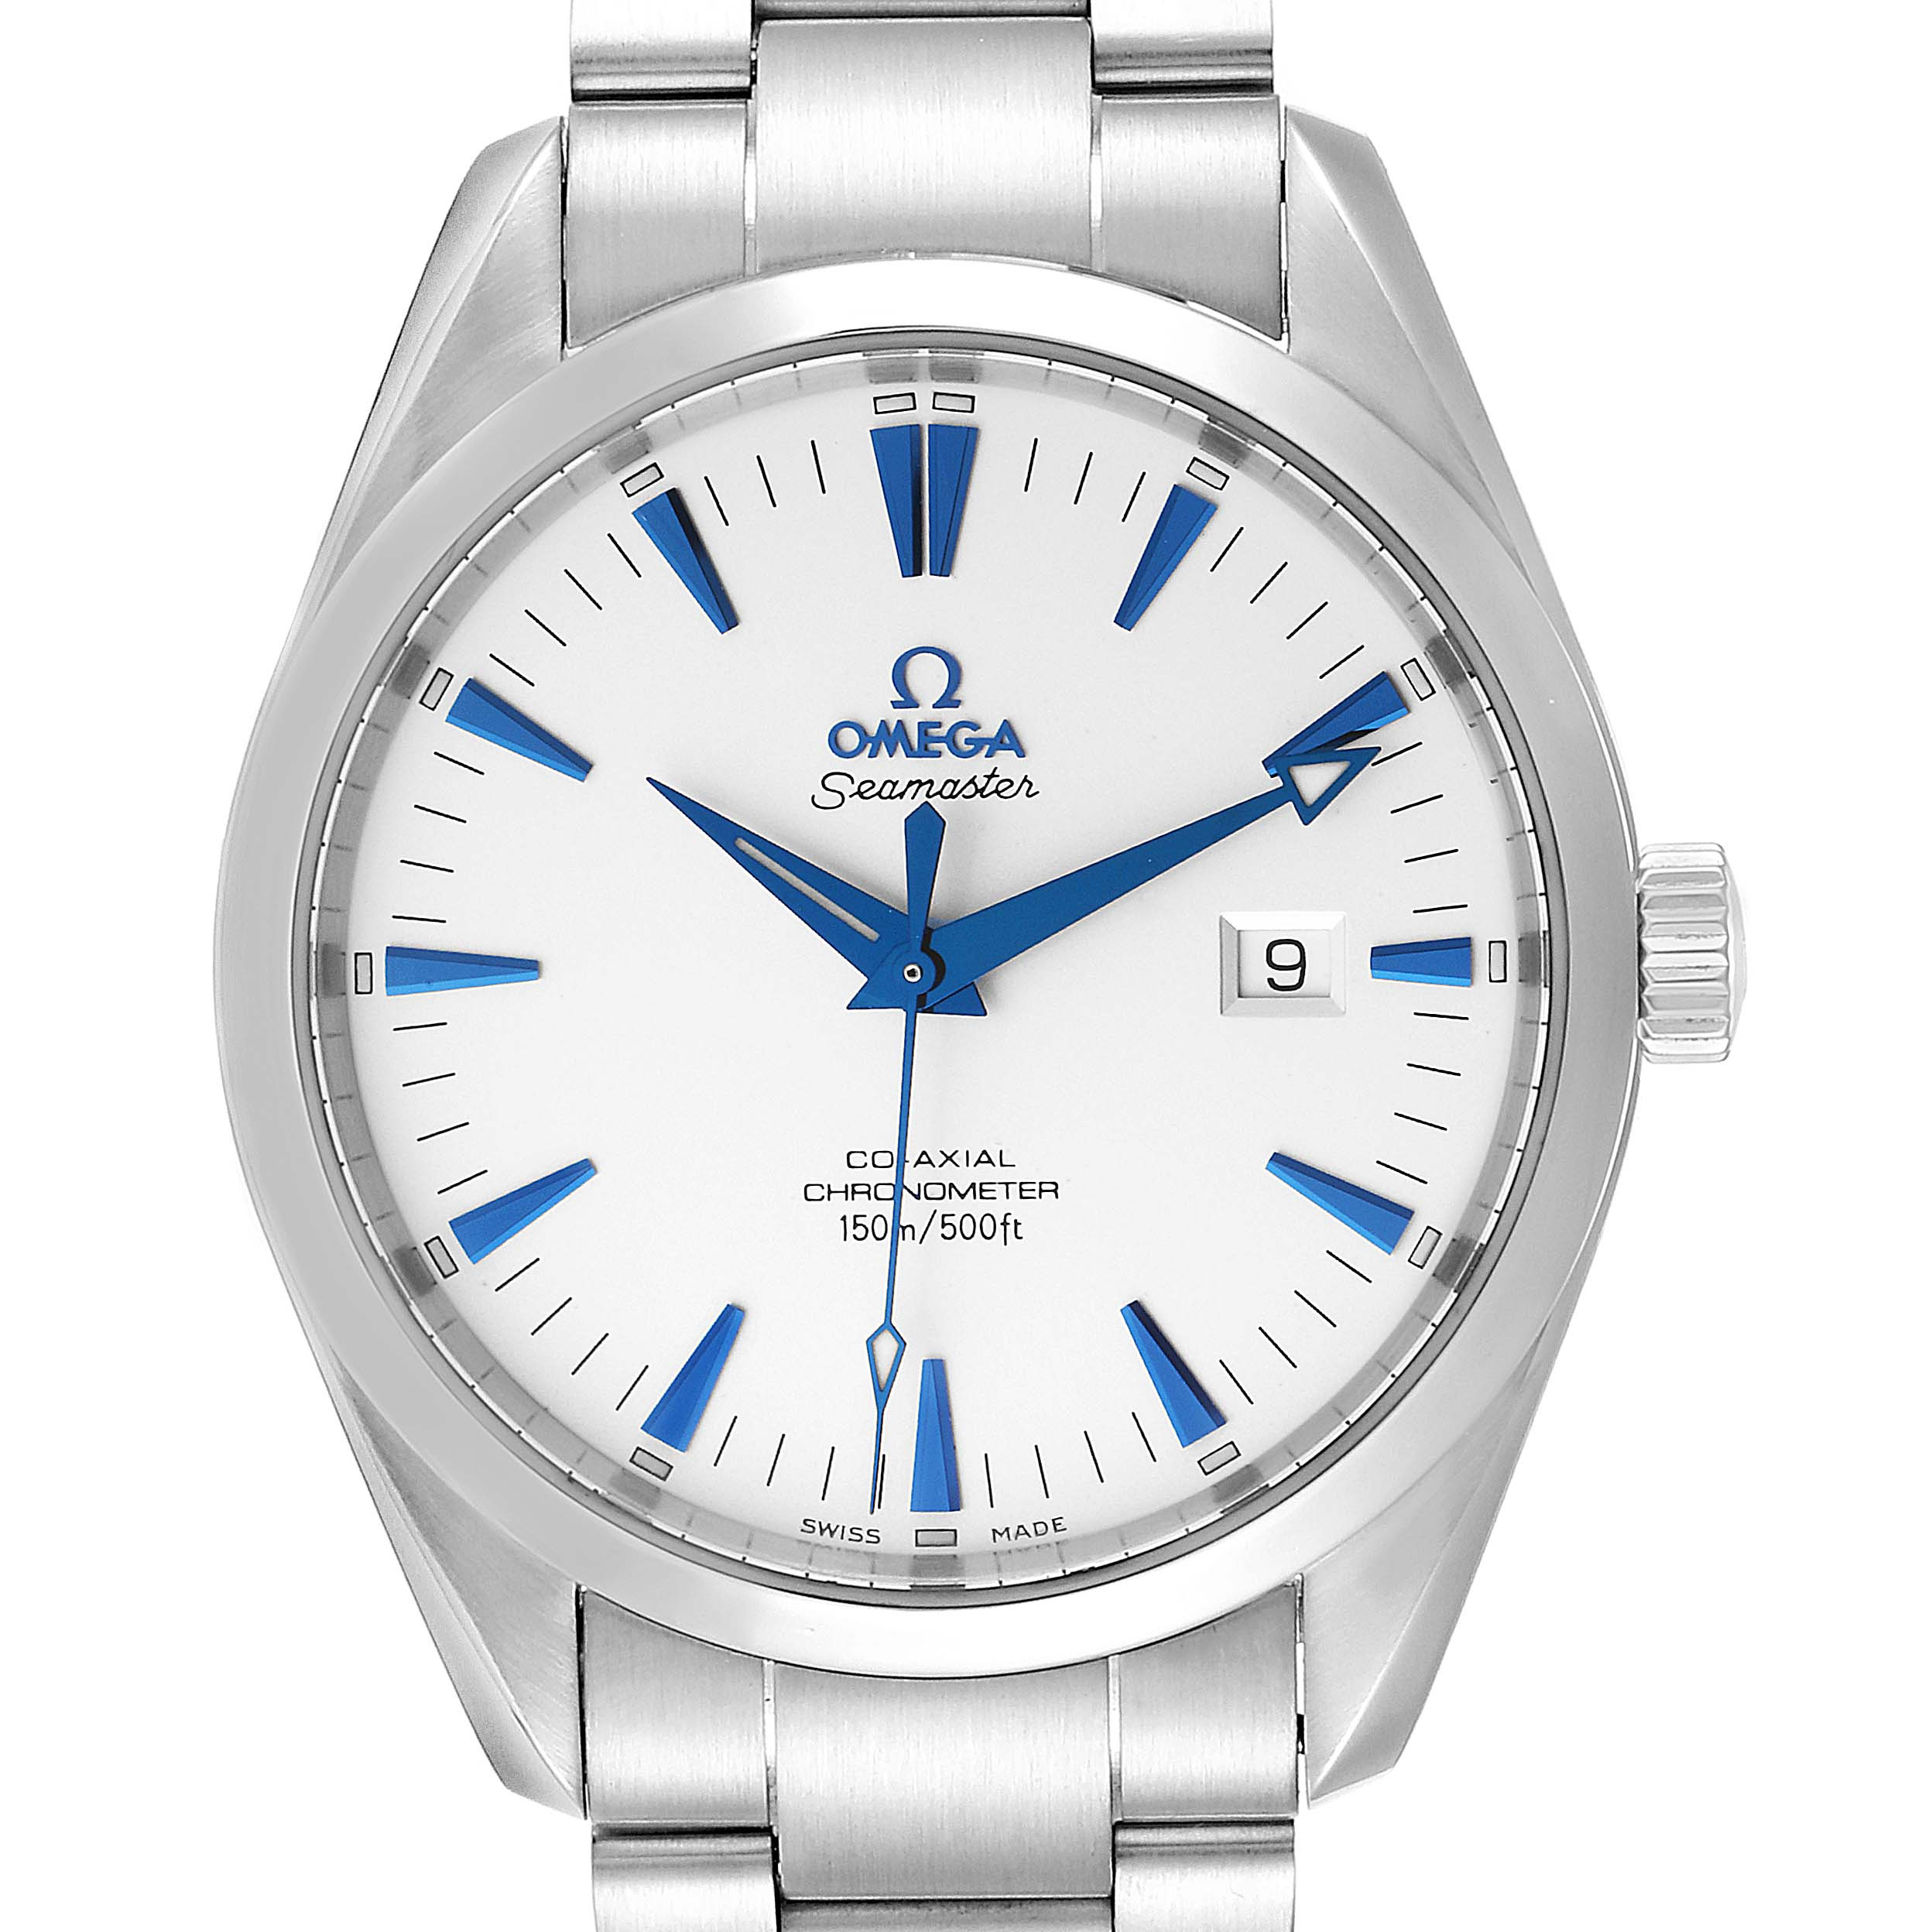 Omega Seamaster Aqua Terra Big Size Steel Mens Watch 2502.33.00 Card